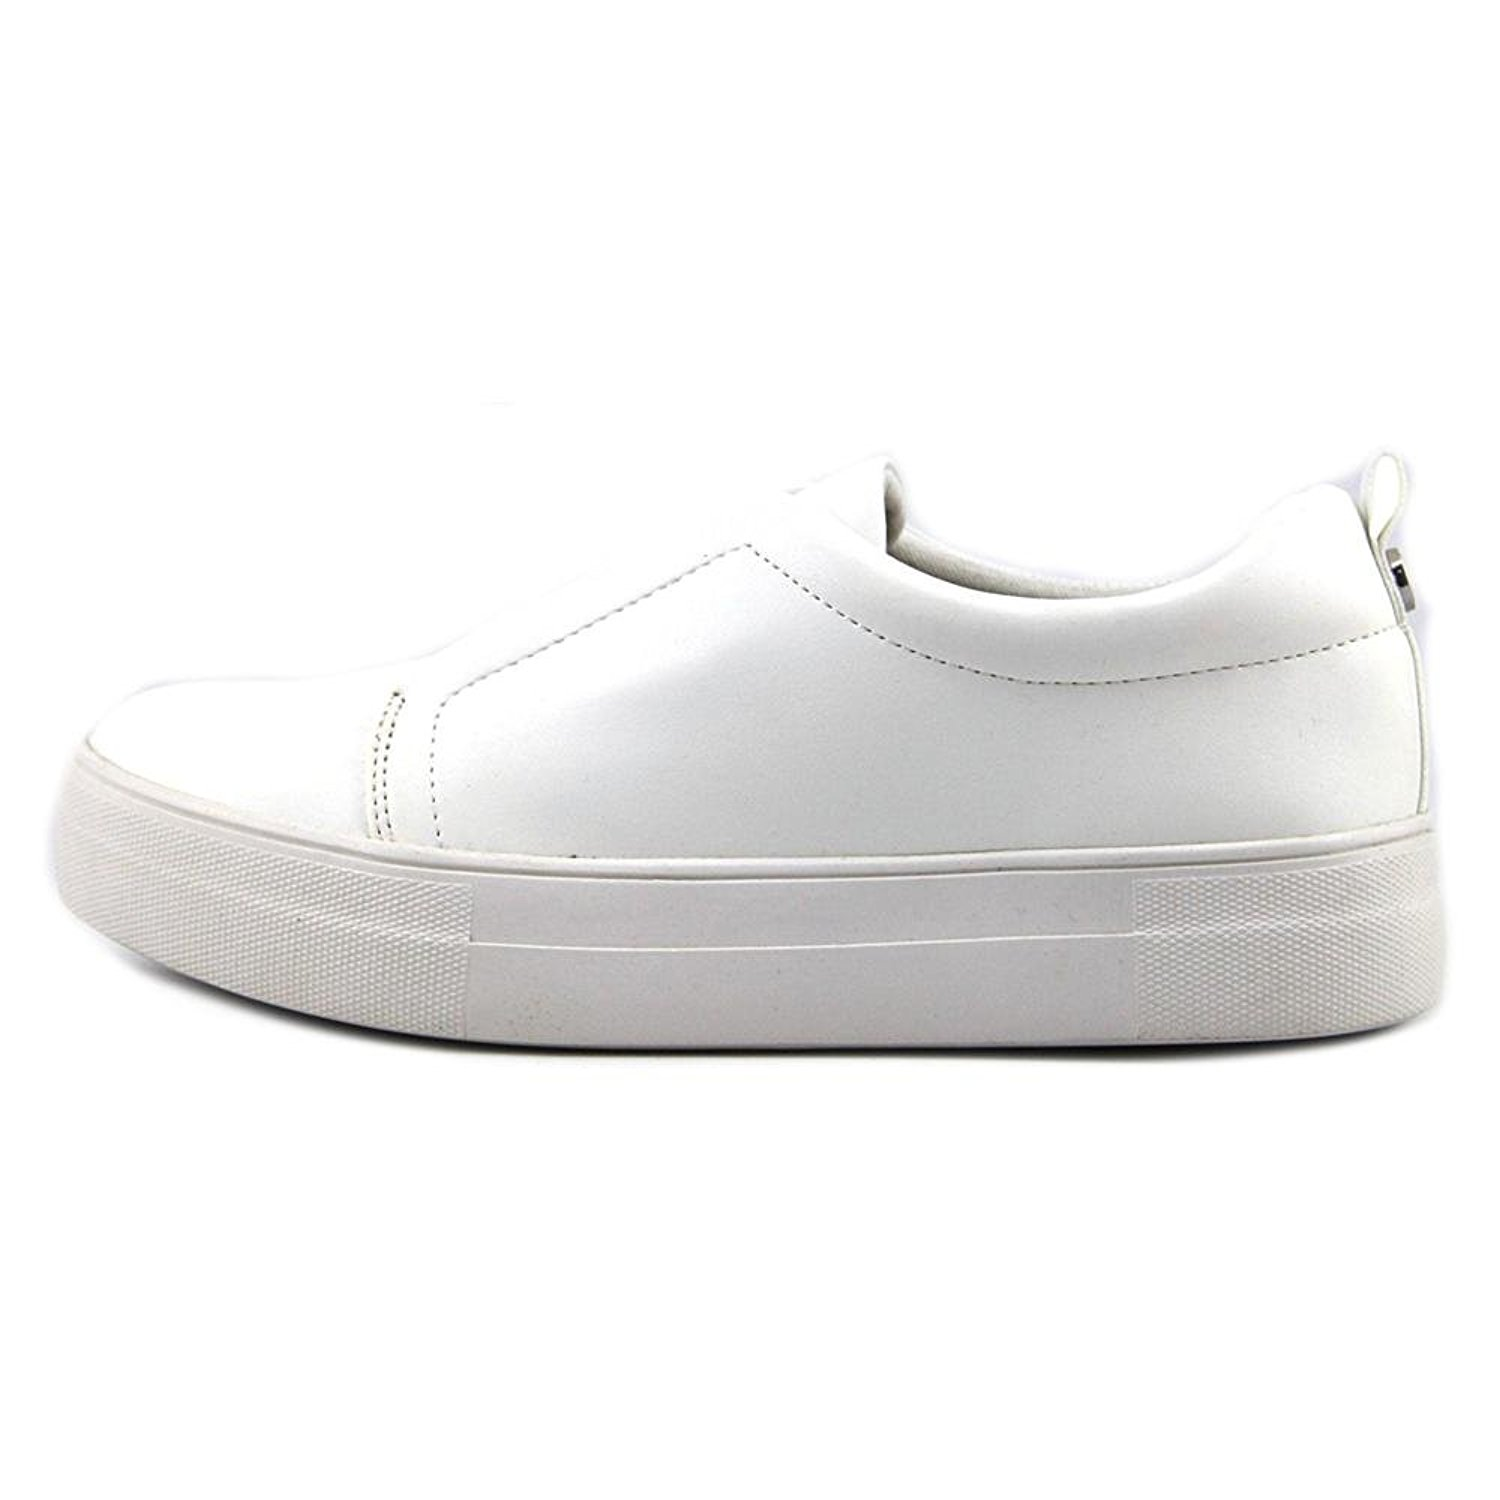 0b022871d12 Steve Madden Womens Goals Low Top Slip On Fashion Sneakers